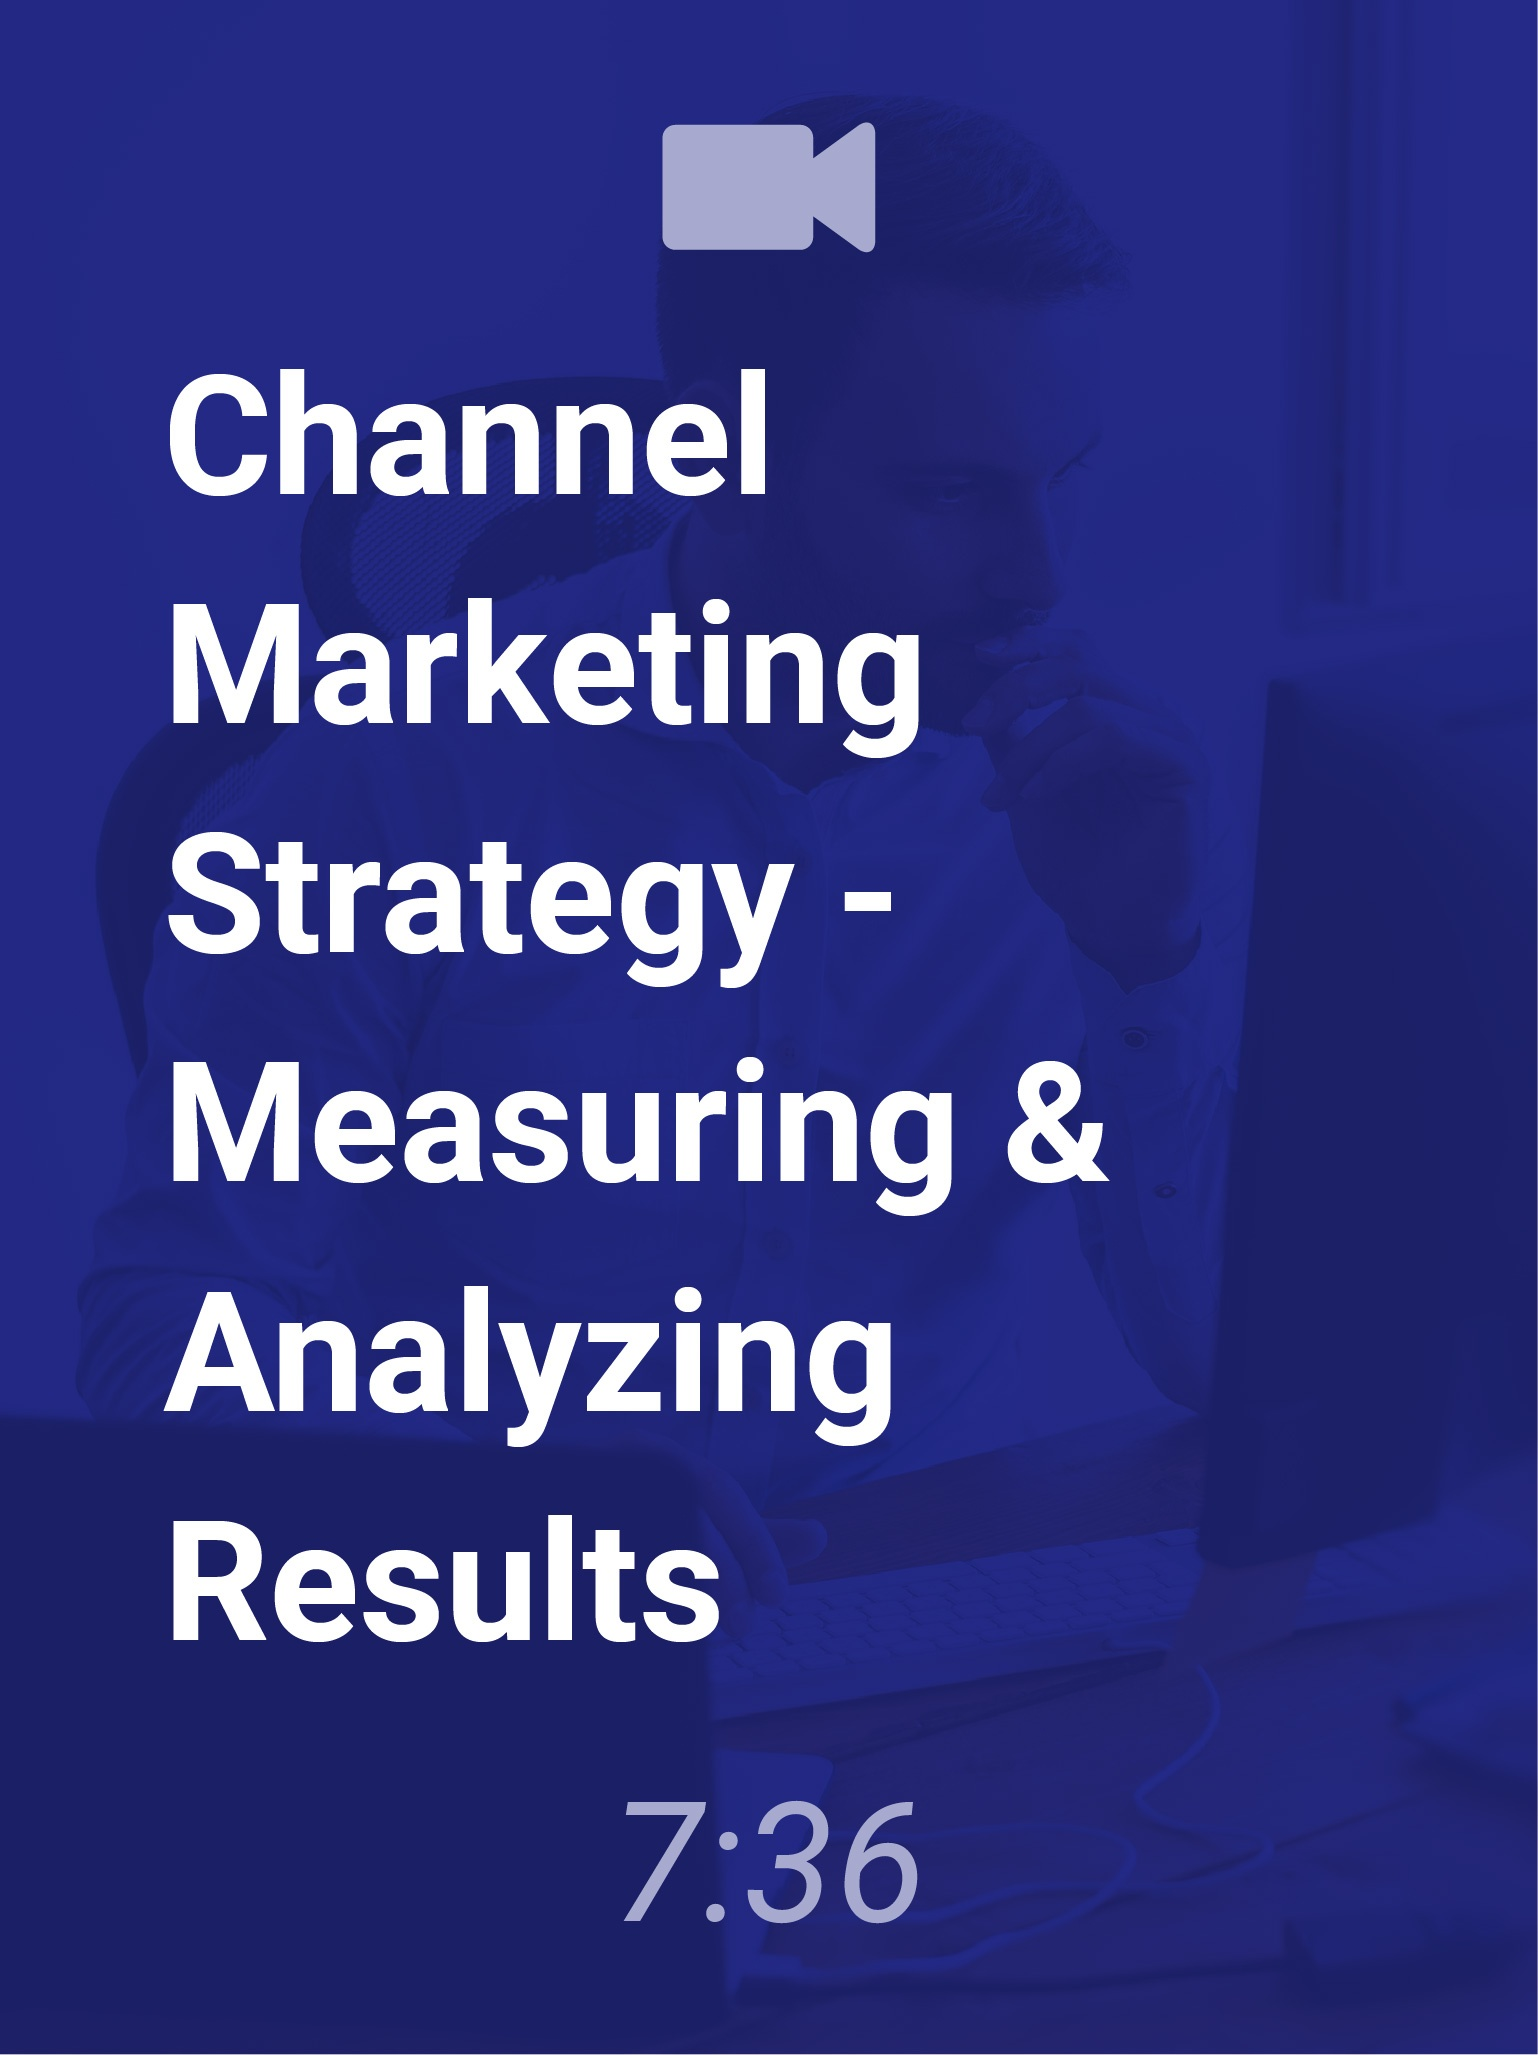 measuring-results-in-channel-marketing